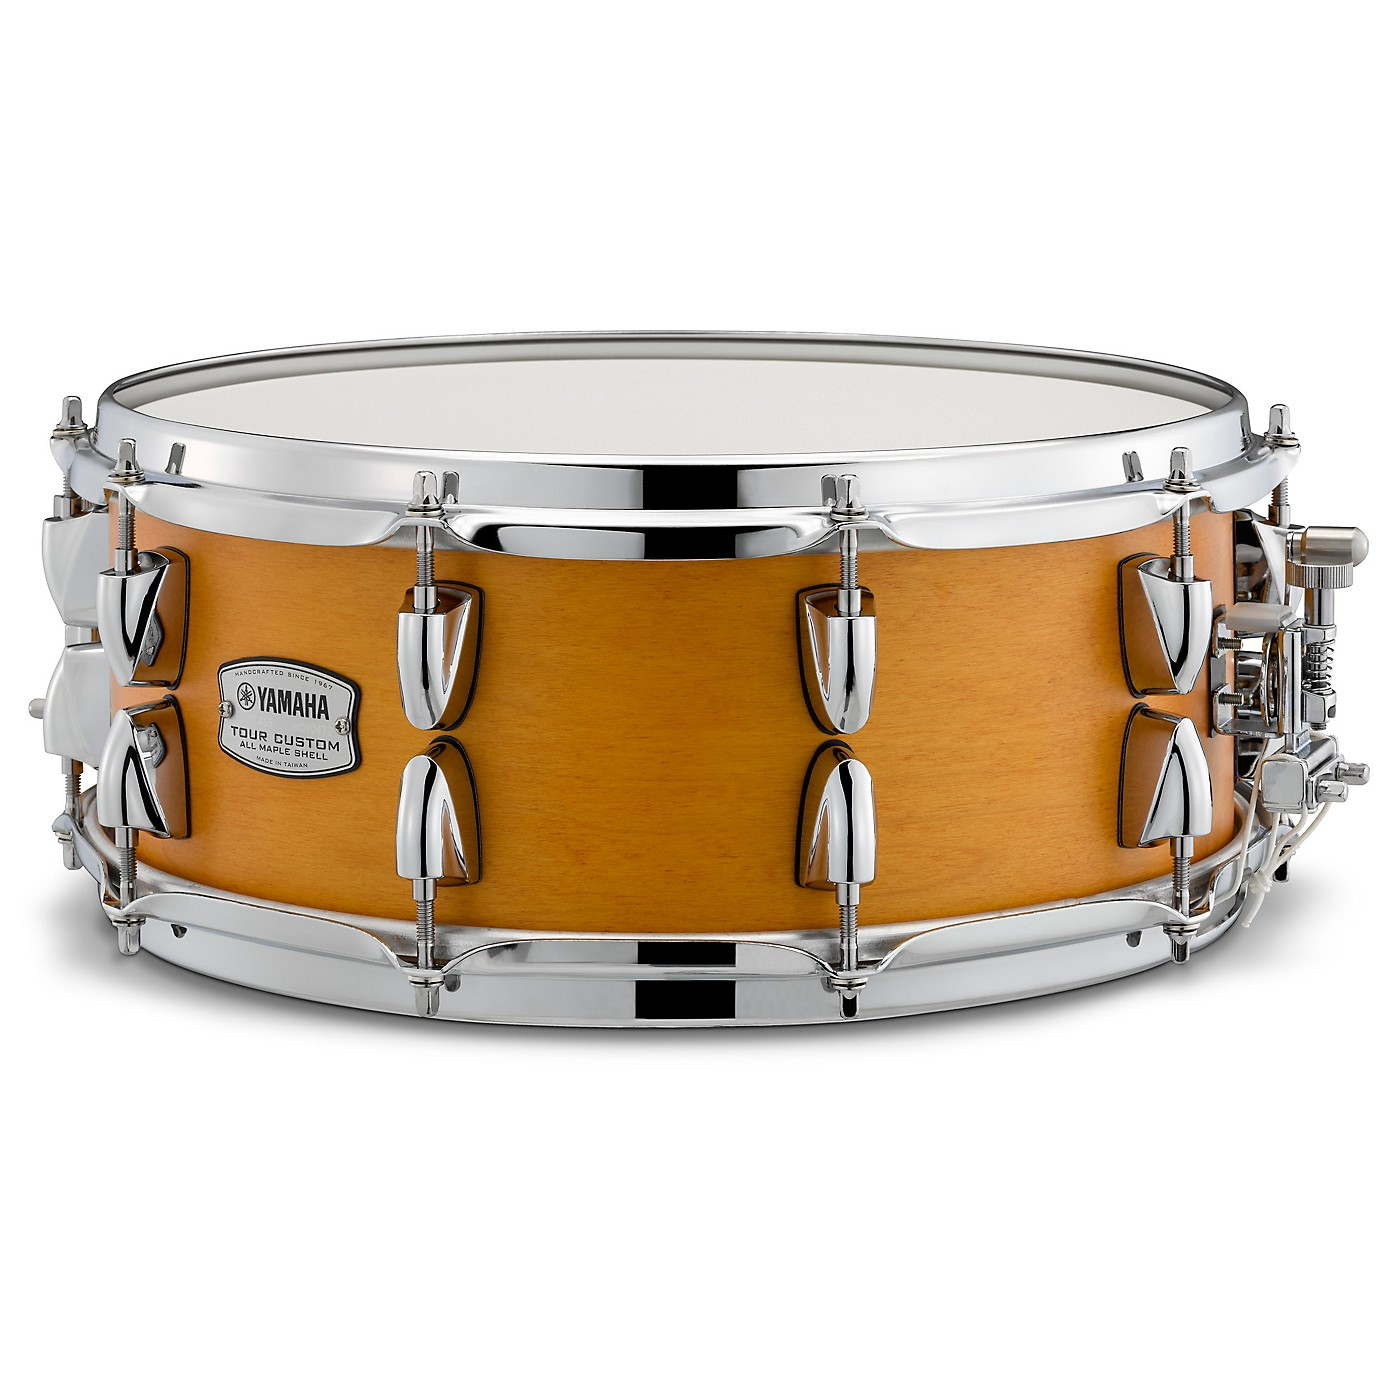 Yamaha Tour Custom Maple Snare Drum thumbnail